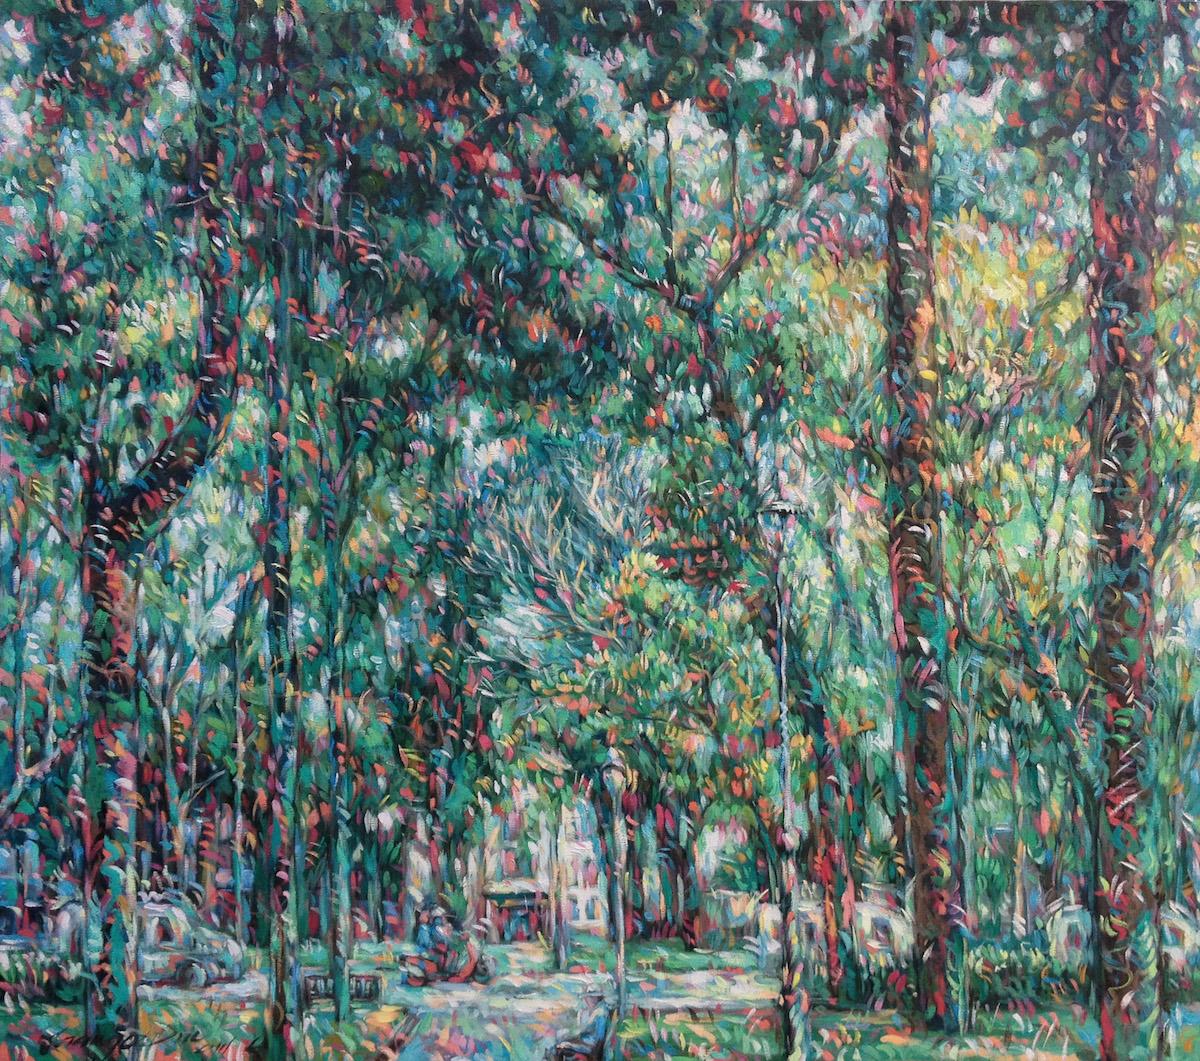 park-in-city-160x140cm-oil-on-canvas